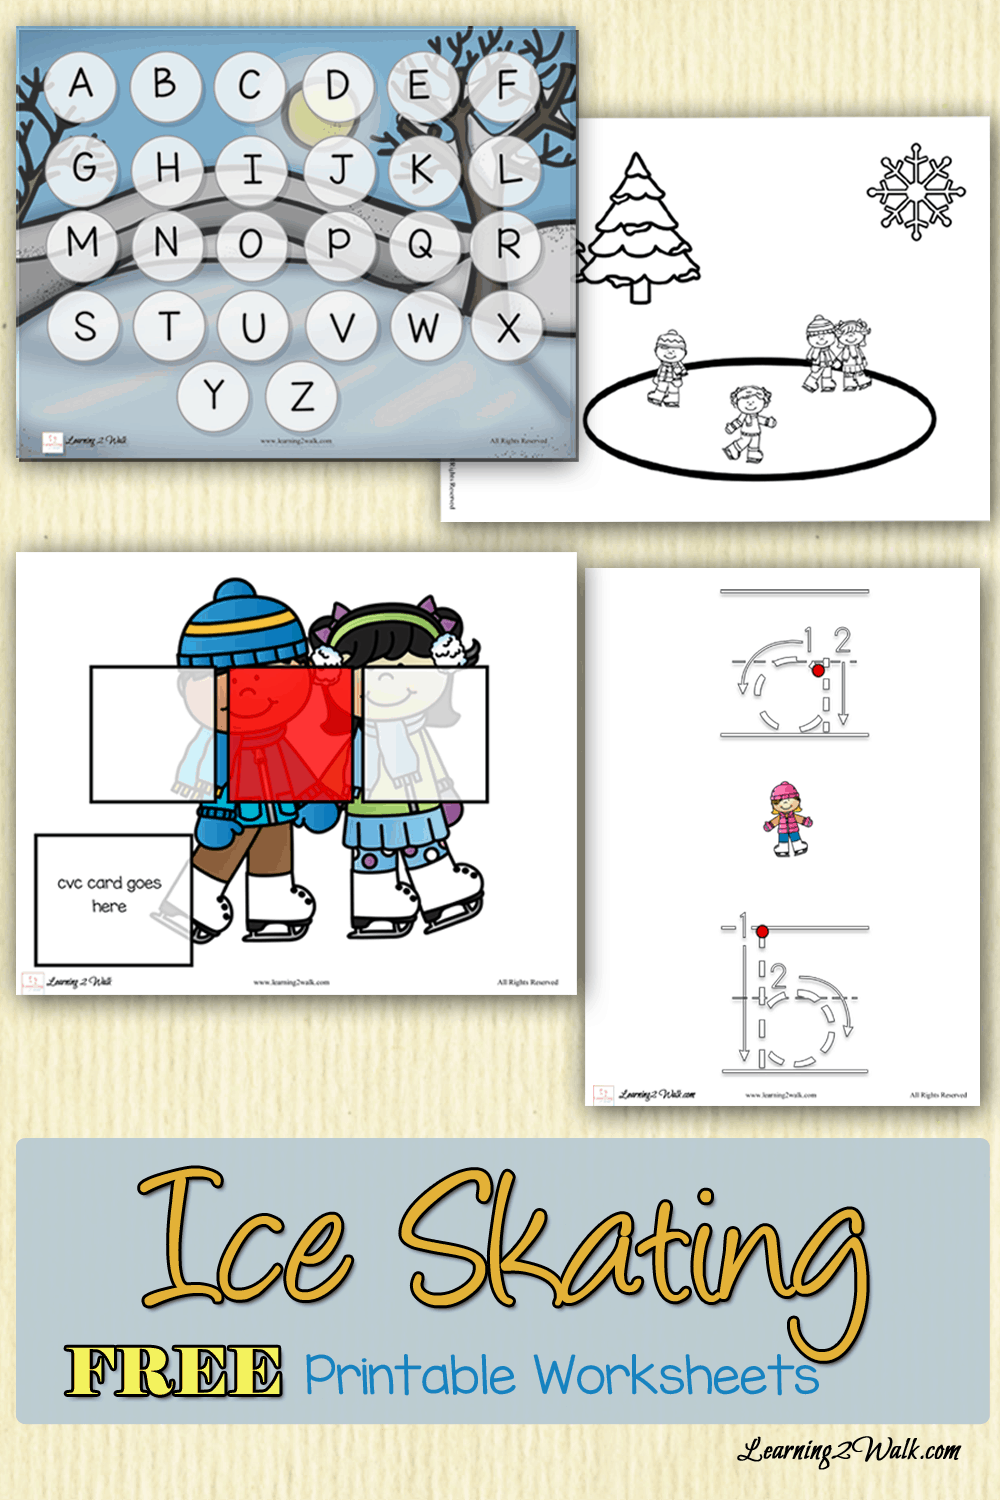 I am loving this ice skating free printable worksheets pack. It has cvc words practice, alphabet activities as well as a few fine motor activities and its all free